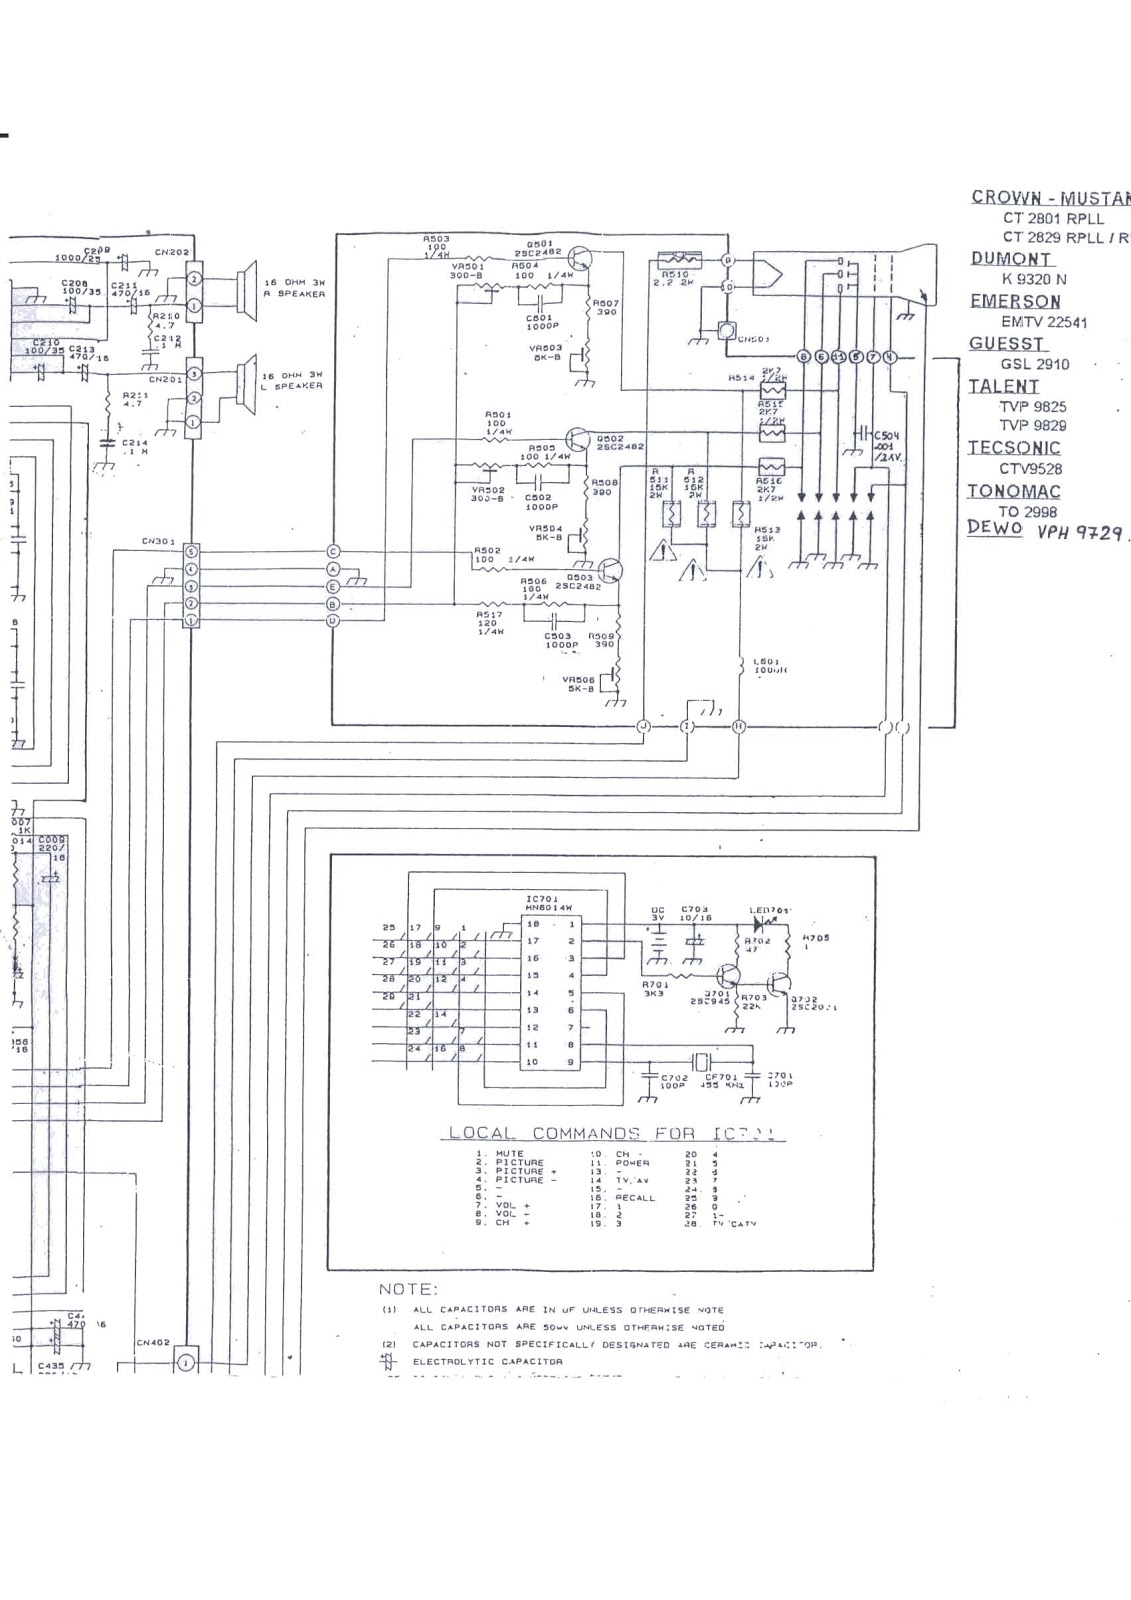 small resolution of awesome ford 7710 tractor wiring diagram photos best image diagram wiring diagram ford